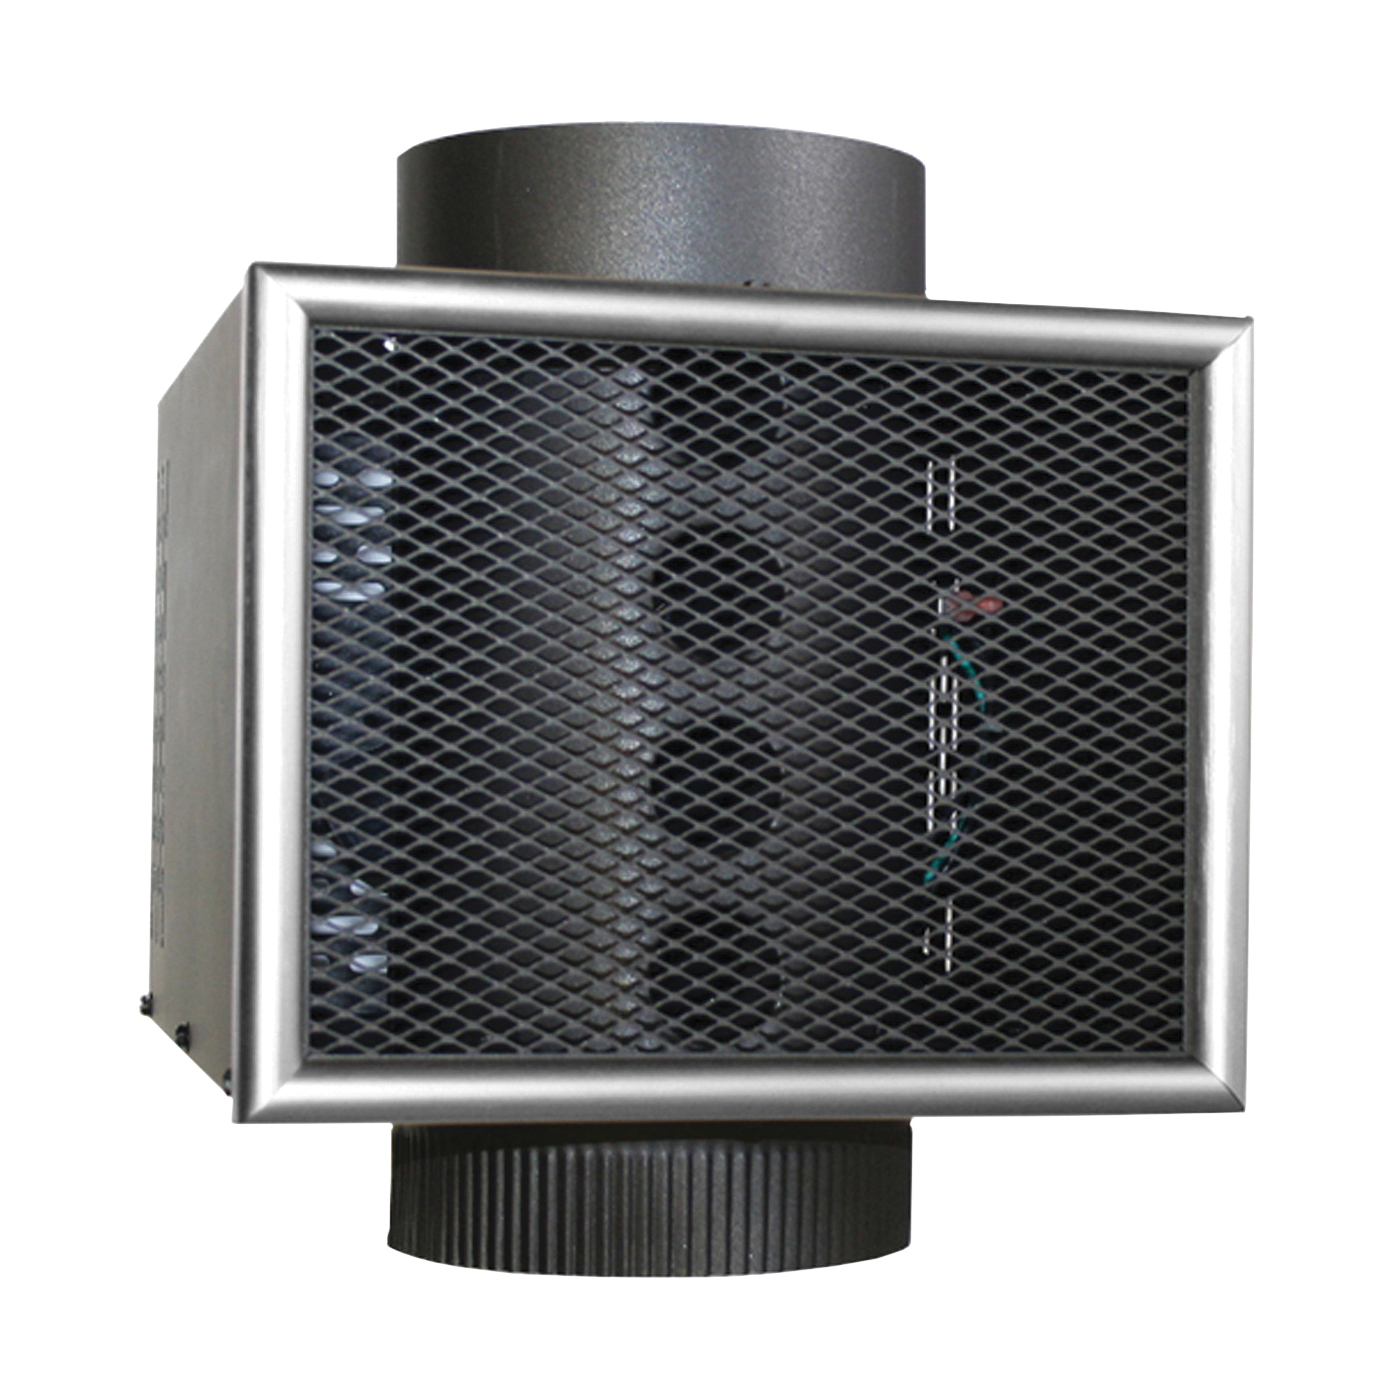 Picture of US STOVE HR-8/MH8 Heat Reclaimer, 130 cfm Air, 8 in Dia Pipe, Steel, Matte, Black